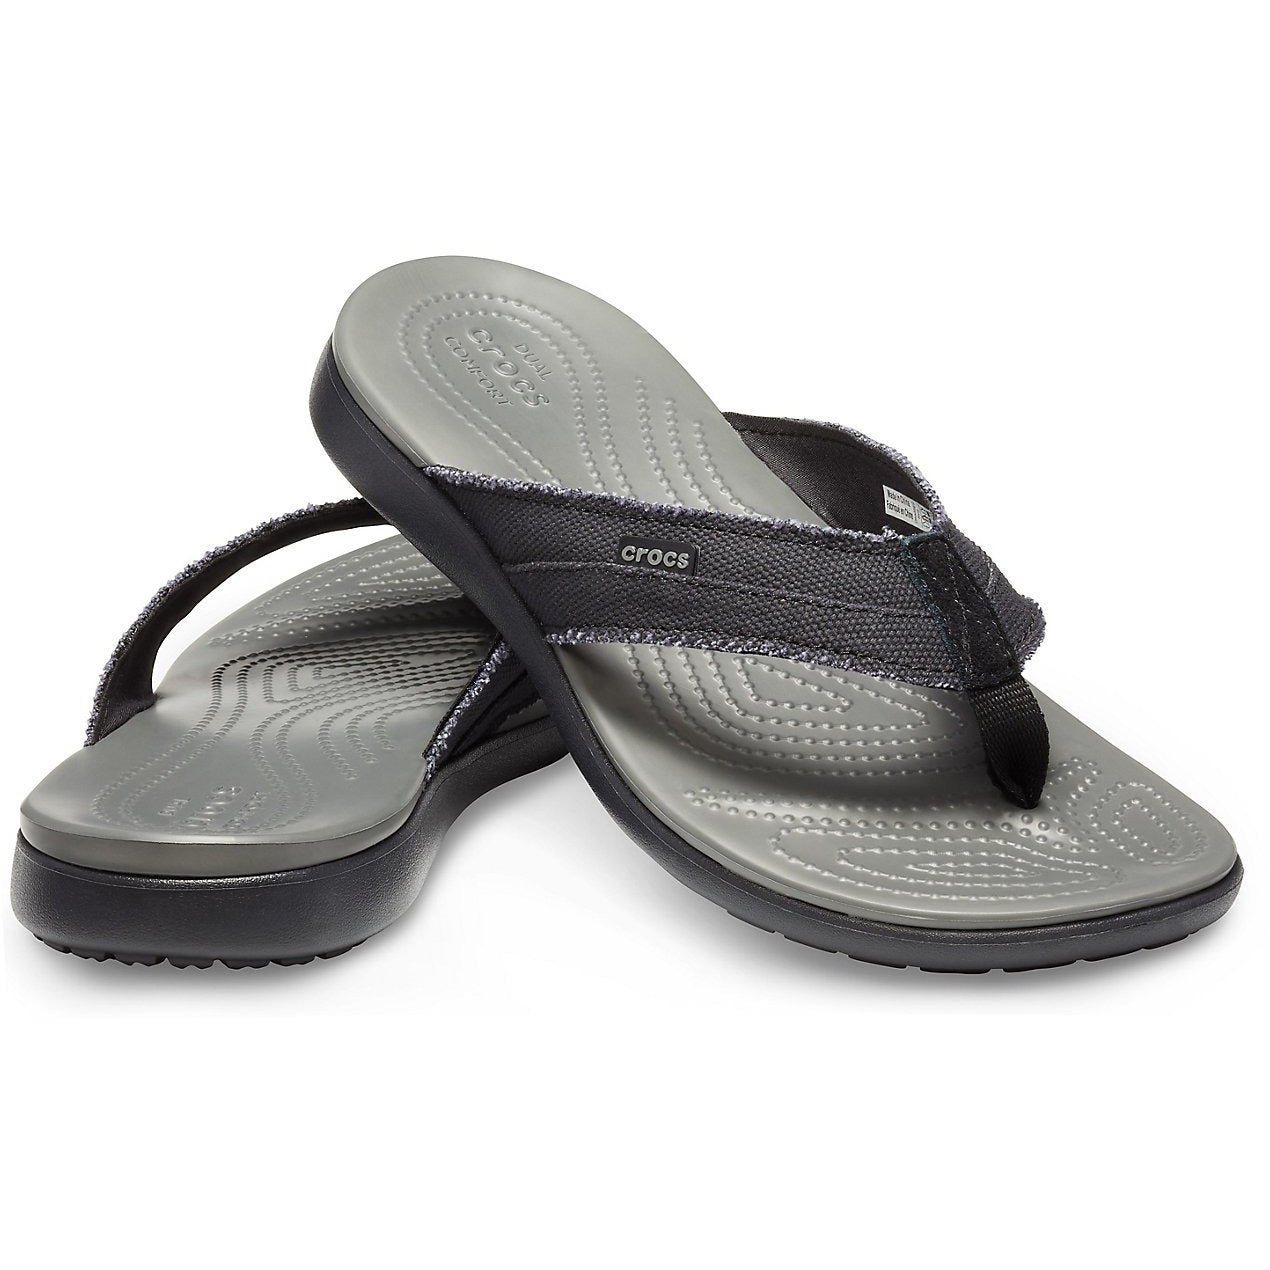 CROCS SANTA CRUZ CANVAS FLIP BLACK/SLATE GREY getset-footwear.myshopify.com